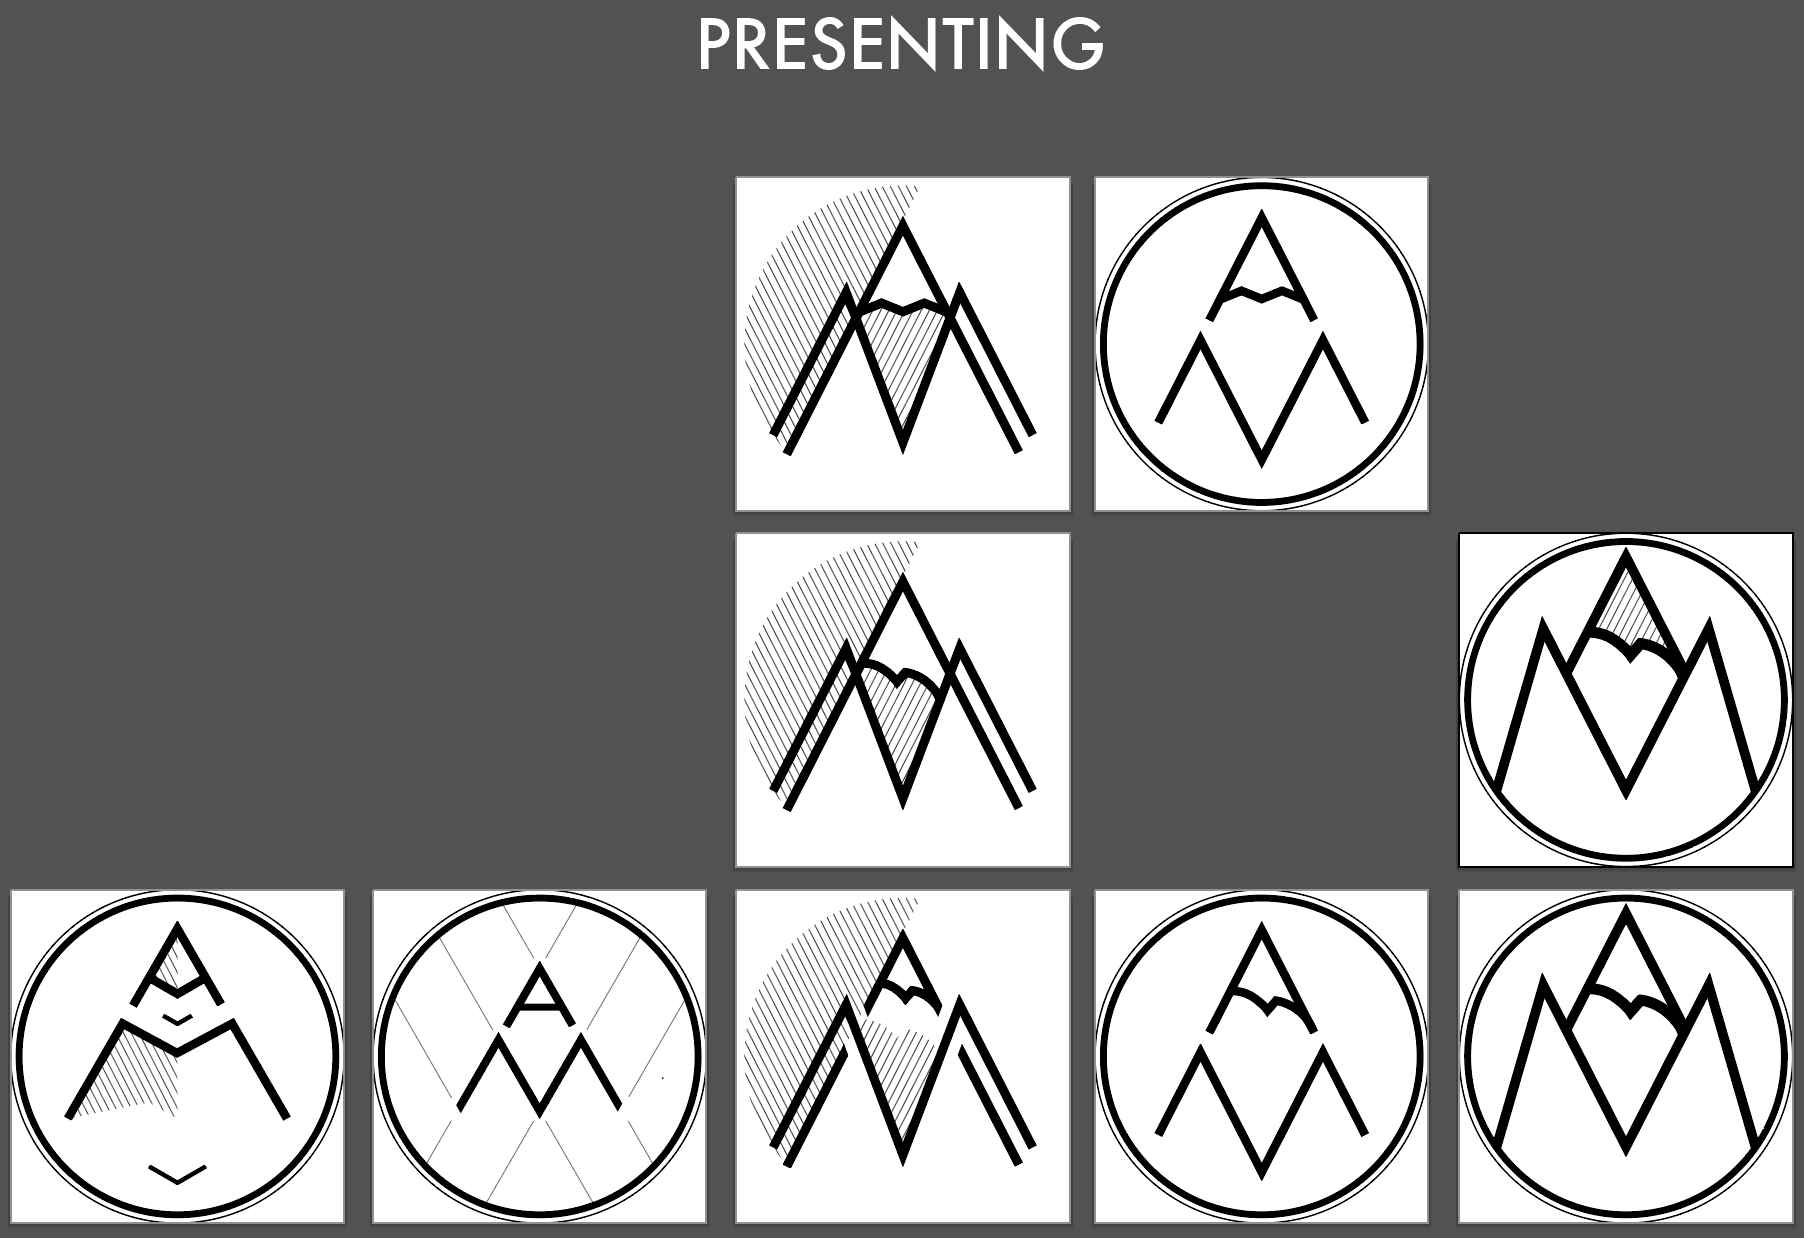 Isolated motifs to review with client